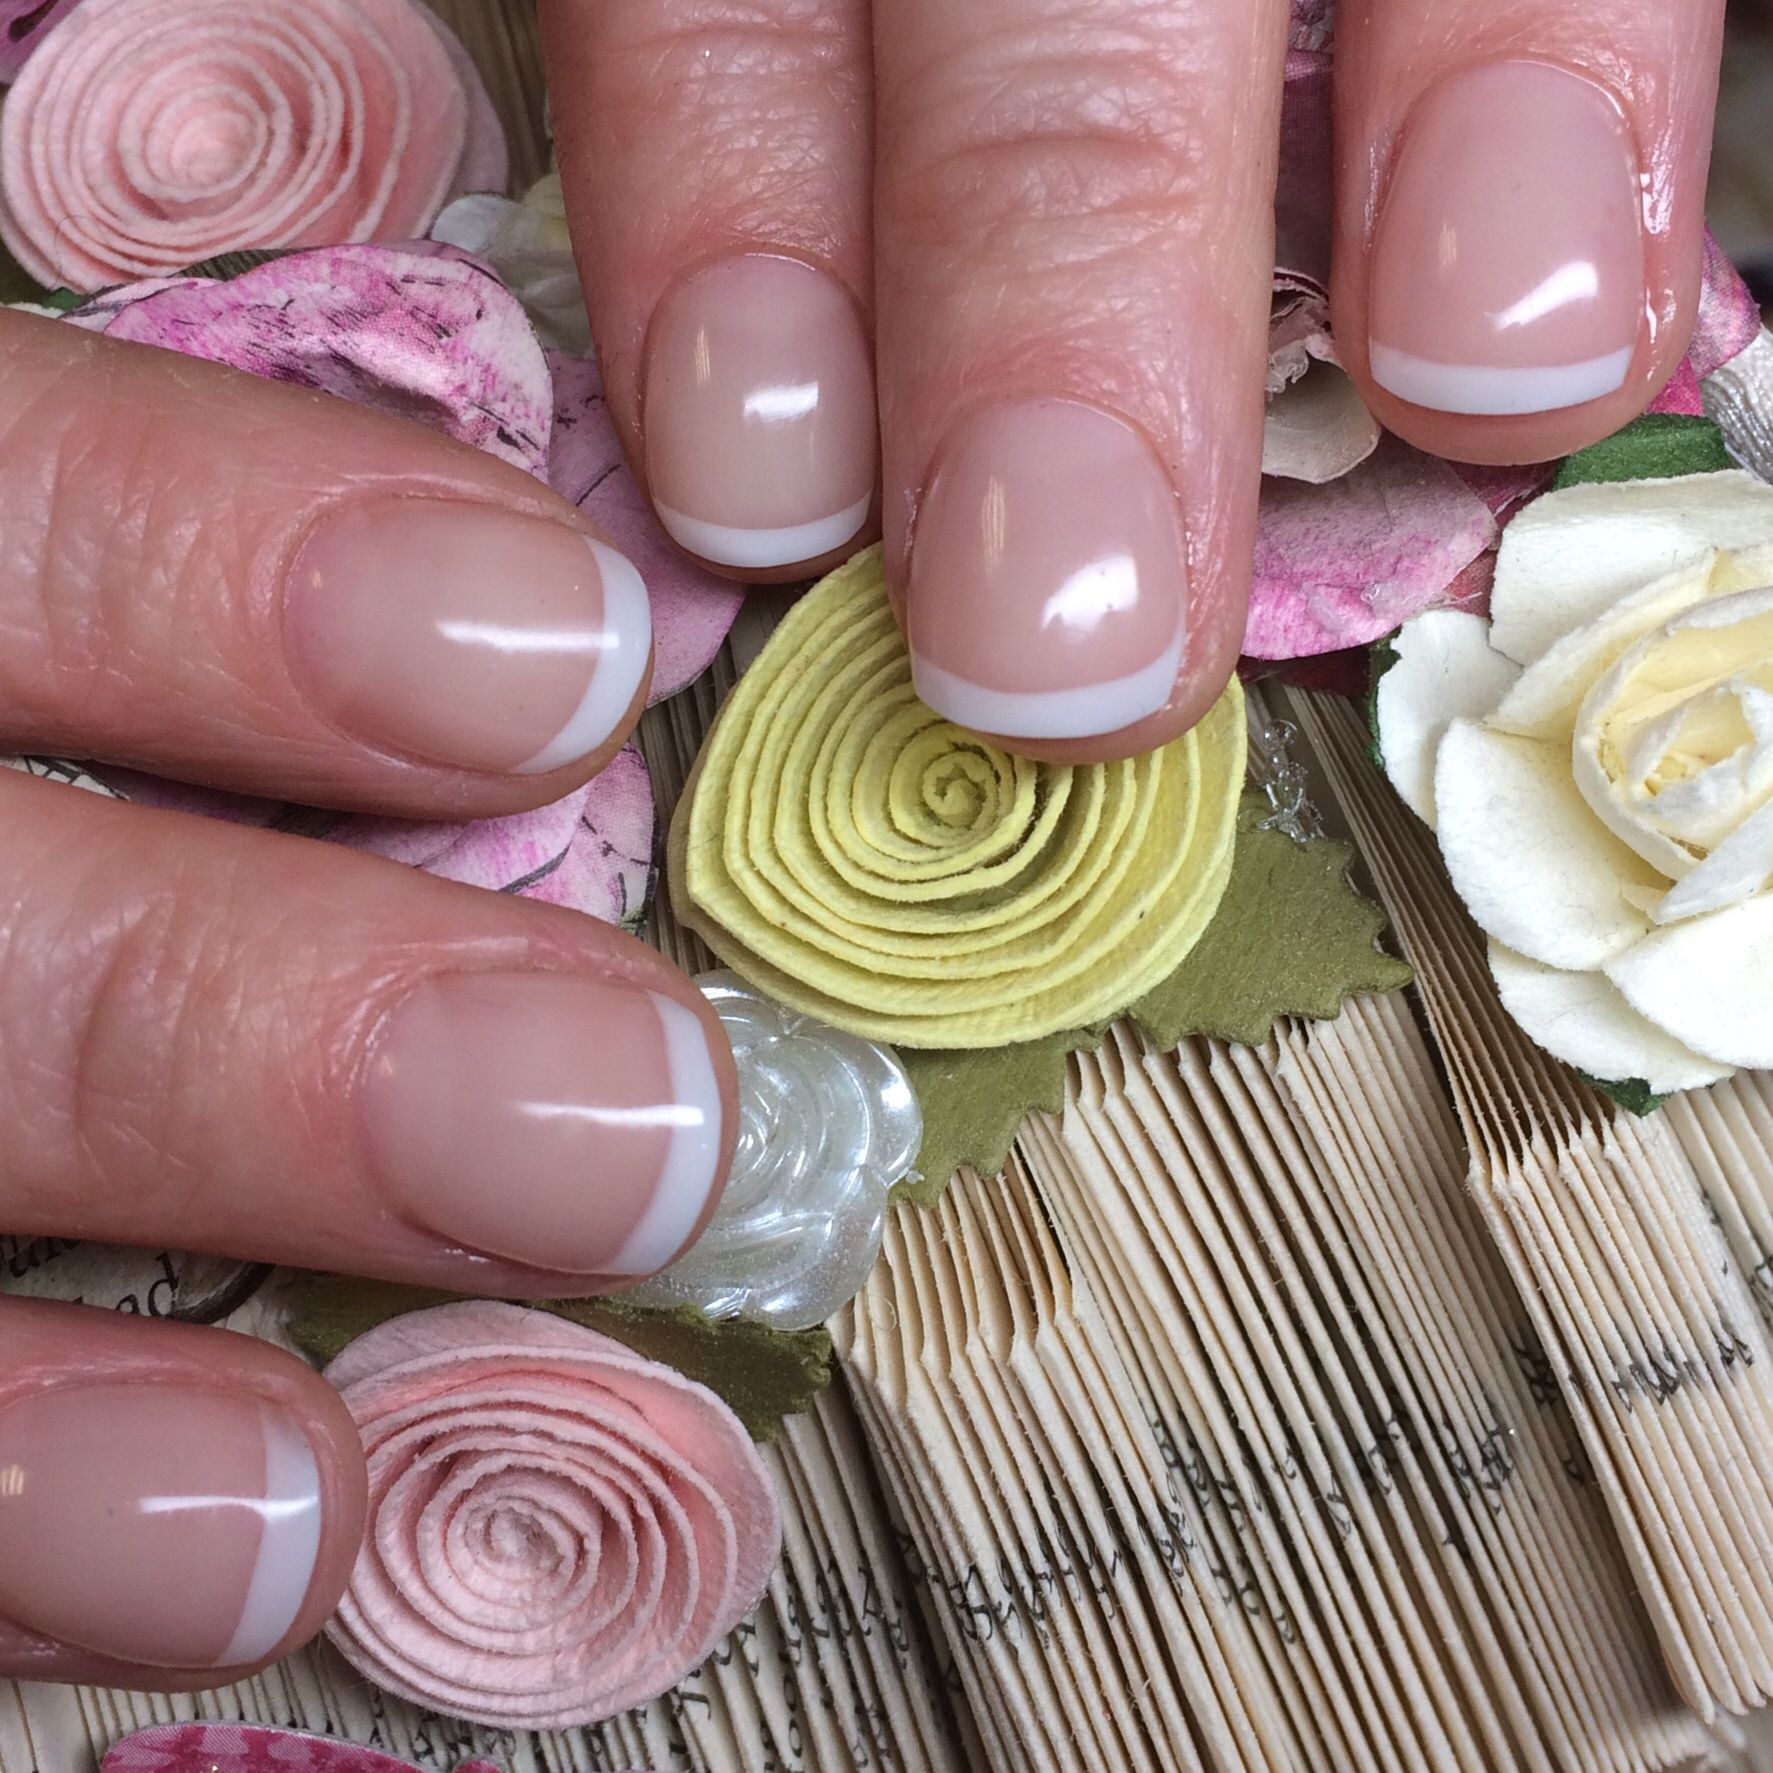 Gelish Polygel In Light Pink And Soft White From Nailharmonyuk Gelish Nail Artist Beauty Therapist Nails